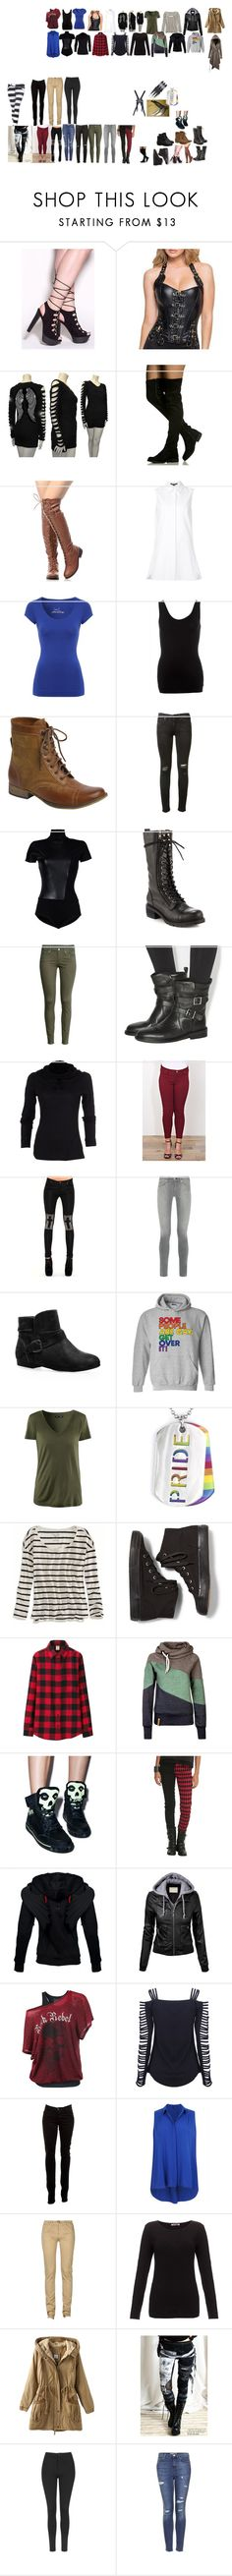 """A Gruesome Love"" by jack-loves-cake ❤ liked on Polyvore featuring Alexander Wang, Jane Norman, DAY Birger et Mikkelsen, Fat Face, rag & bone, Space Style Concept, Kelsi Dagger Brooklyn, H&M, Office and ExOfficio"